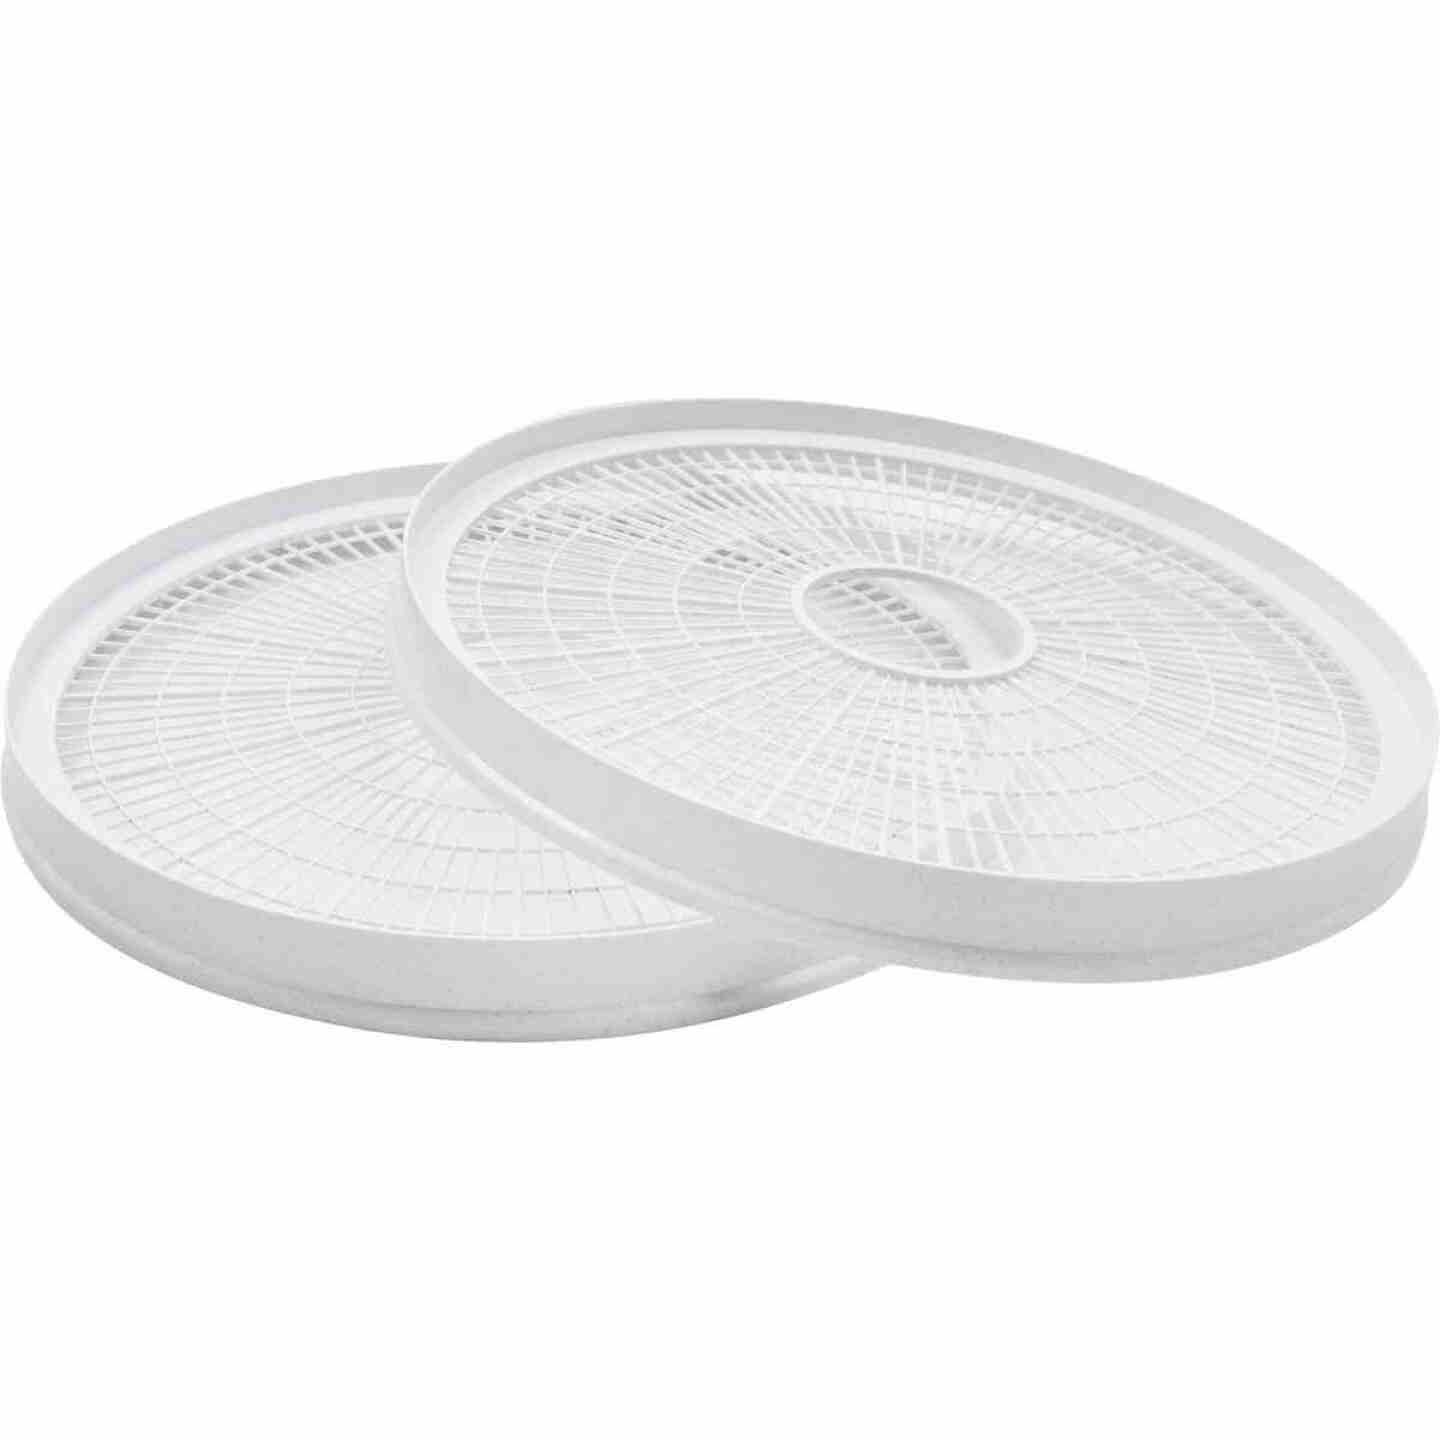 Nesco Snackmaster Add-A-Trays for 20 & 30 Series Dehydrators (2 Count) Image 1